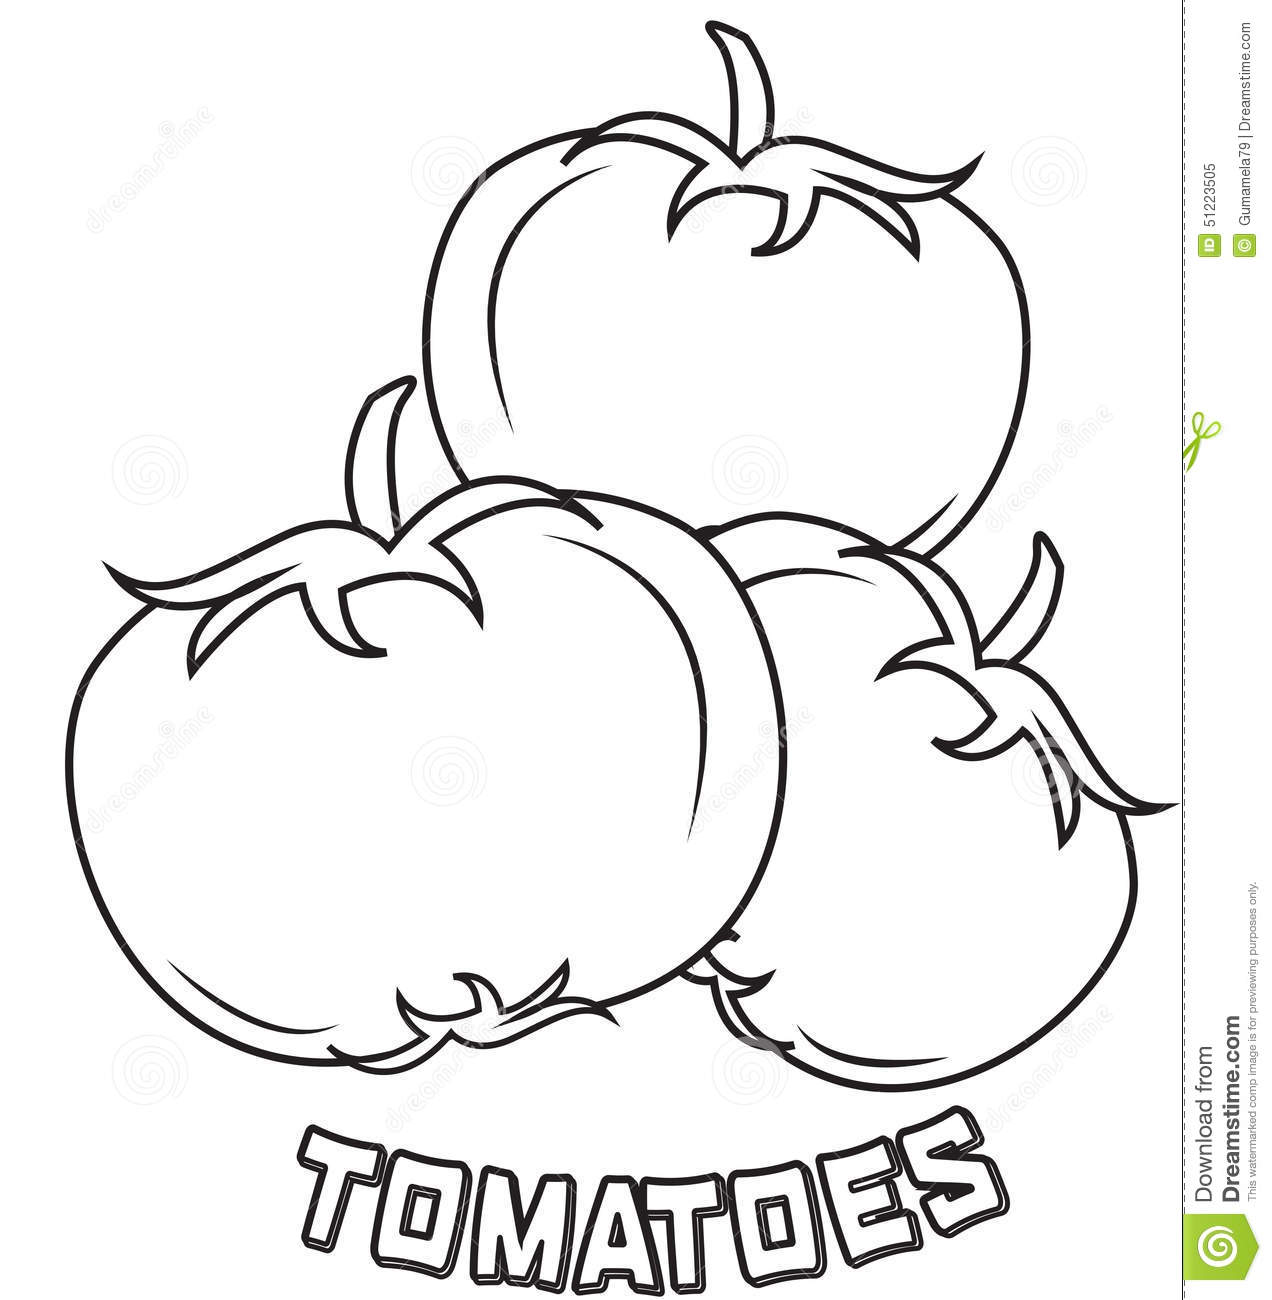 Royalty Free Stock Photo Tomatoes Coloring Page Image